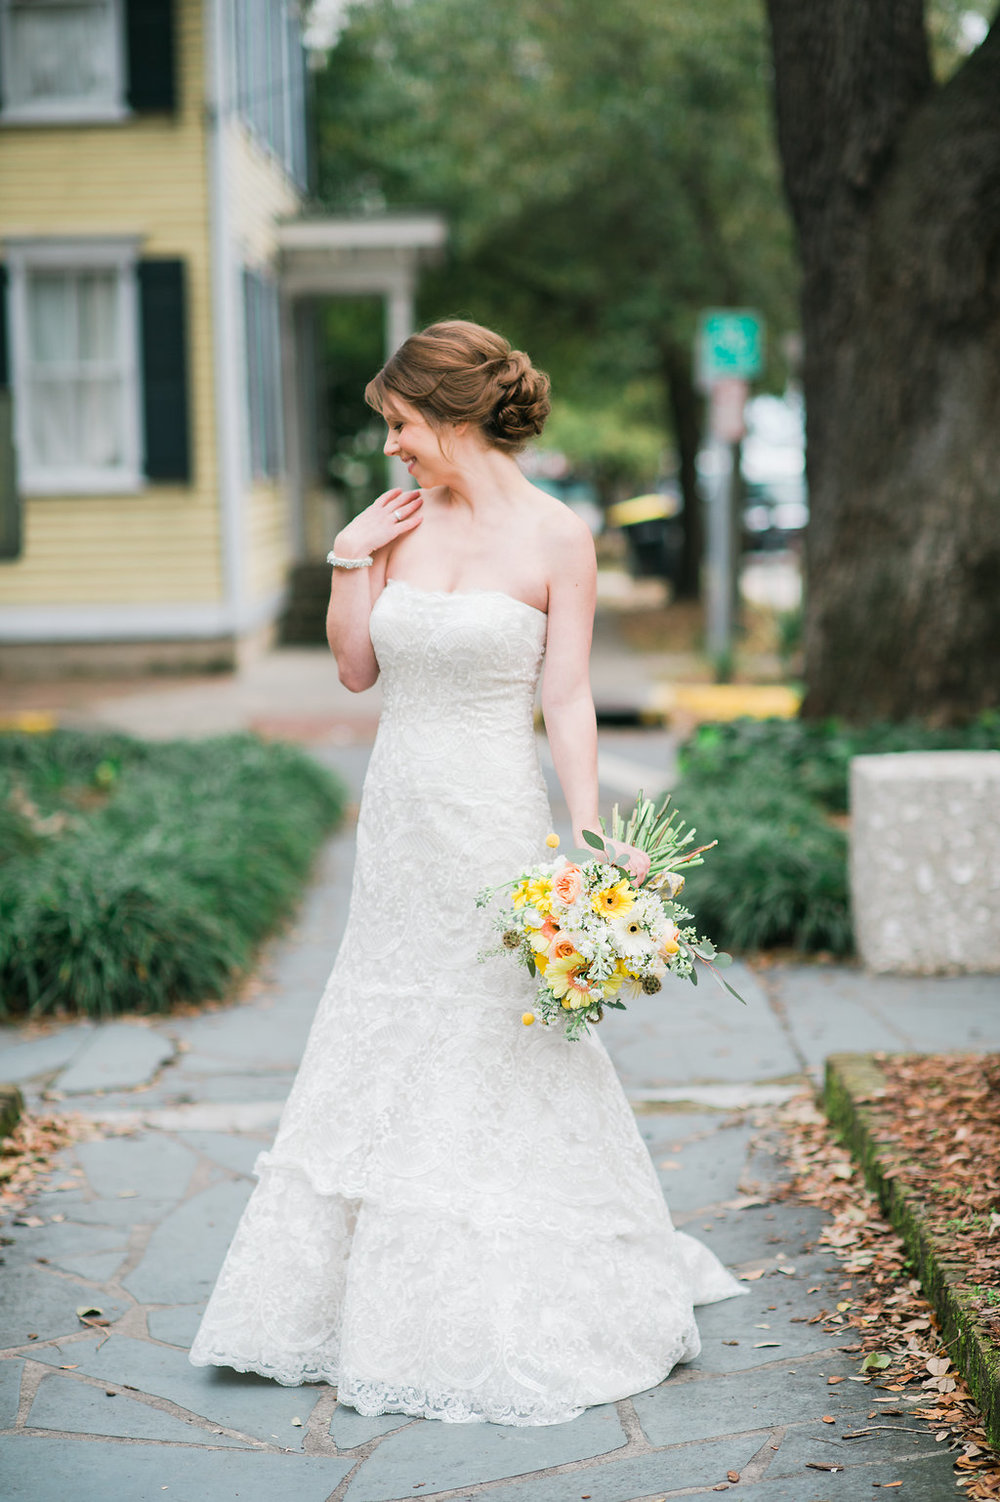 krista-and-clay-rach-loves-troy-photography-ivory-and-beau-bridal-boutique-savannah-wedding-planner-savannah-weddings-savannah-bridal-charles-h-morris-center-wedding-savannah-historic-wedding-savannah-weddings-savannah-weding-planner-25.jpg